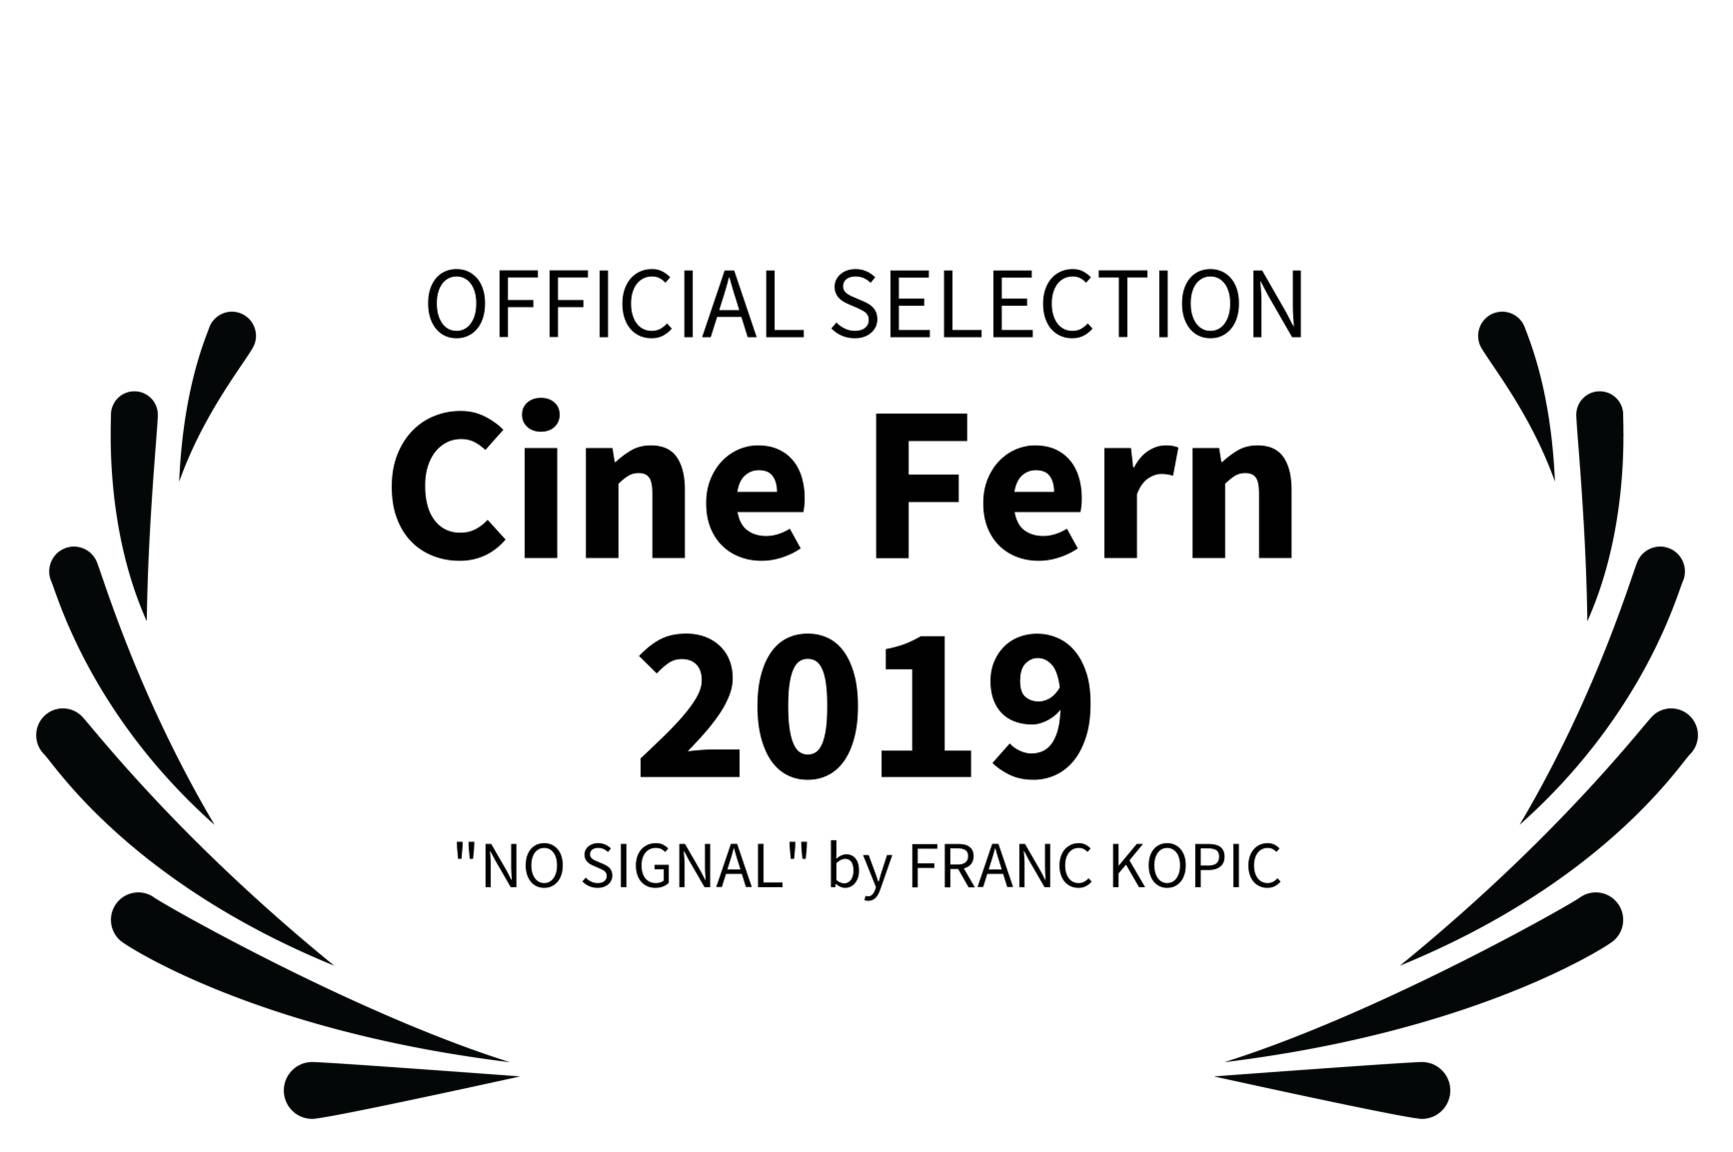 LAUREL CINE FERN